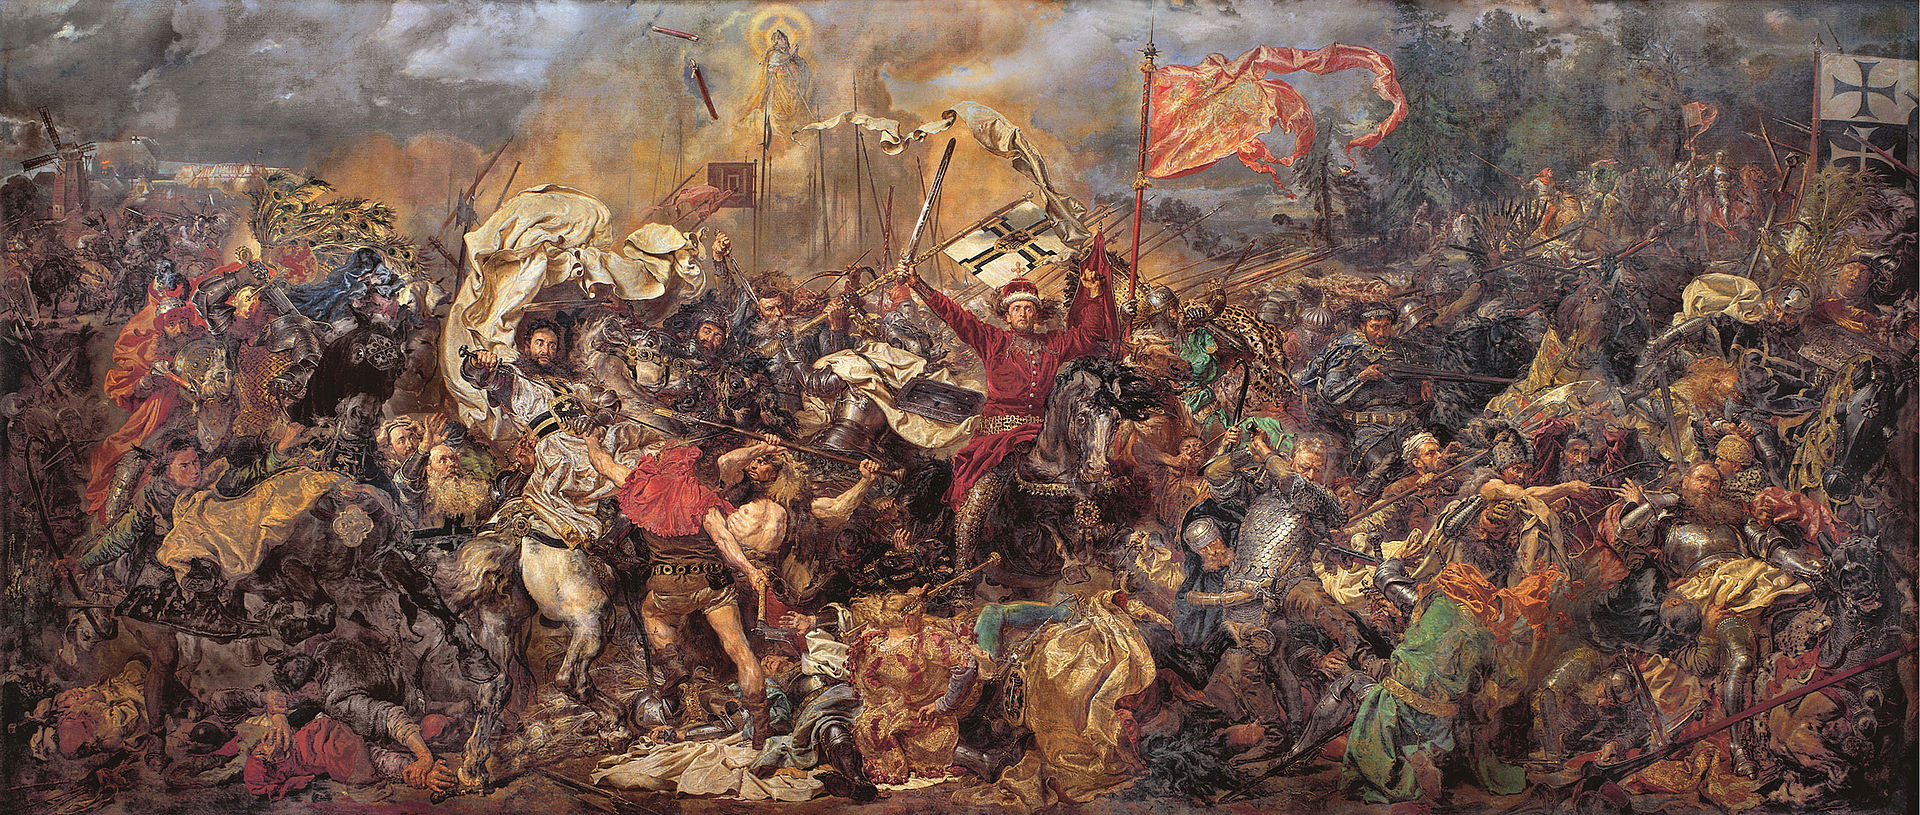 Matejko Battle of Grunwald